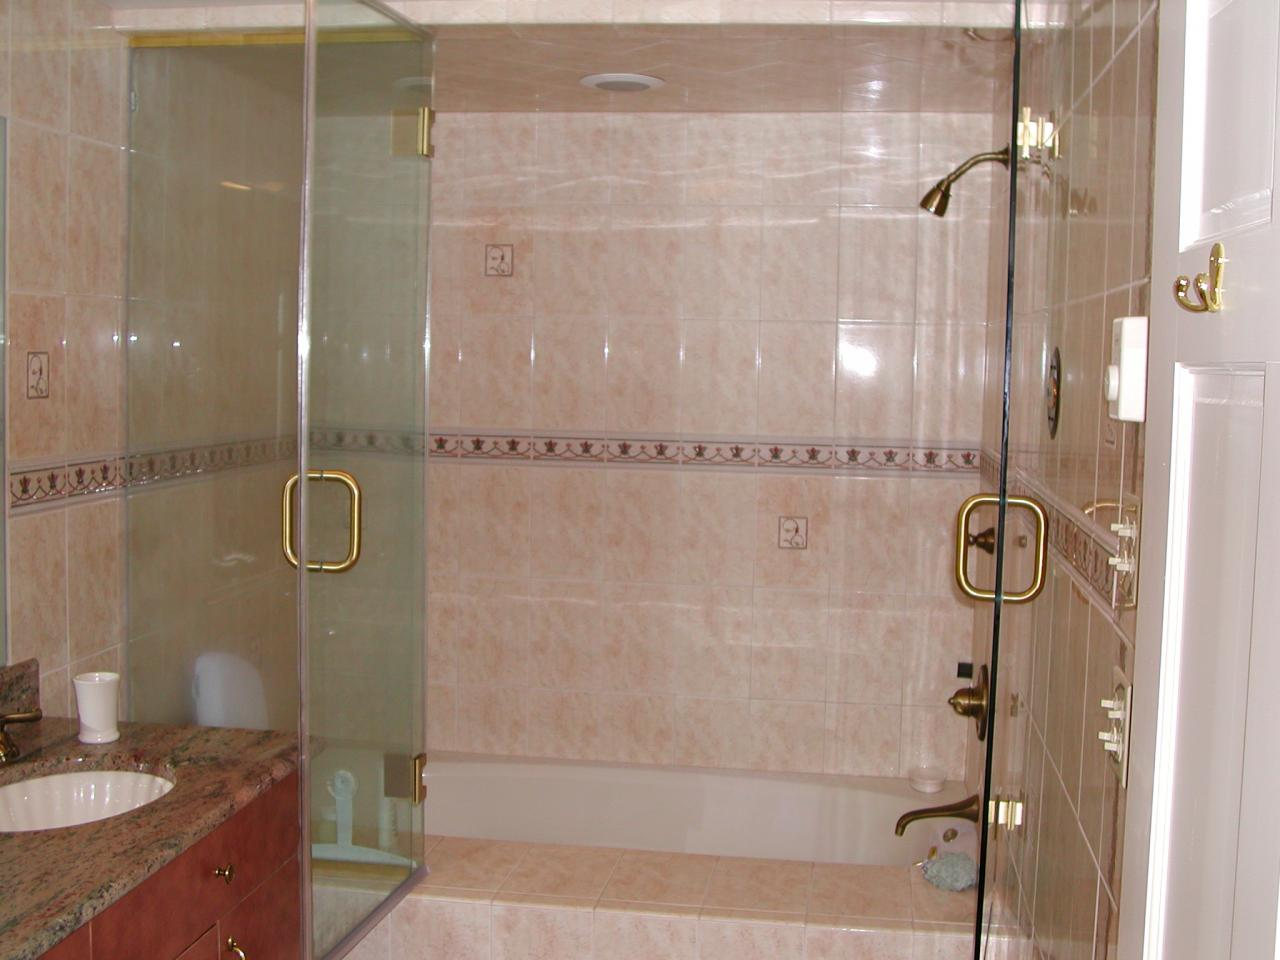 Bathroom Remodeling Cleveland Ohio nest homes construction - bathroom remodeling in cleveland heights